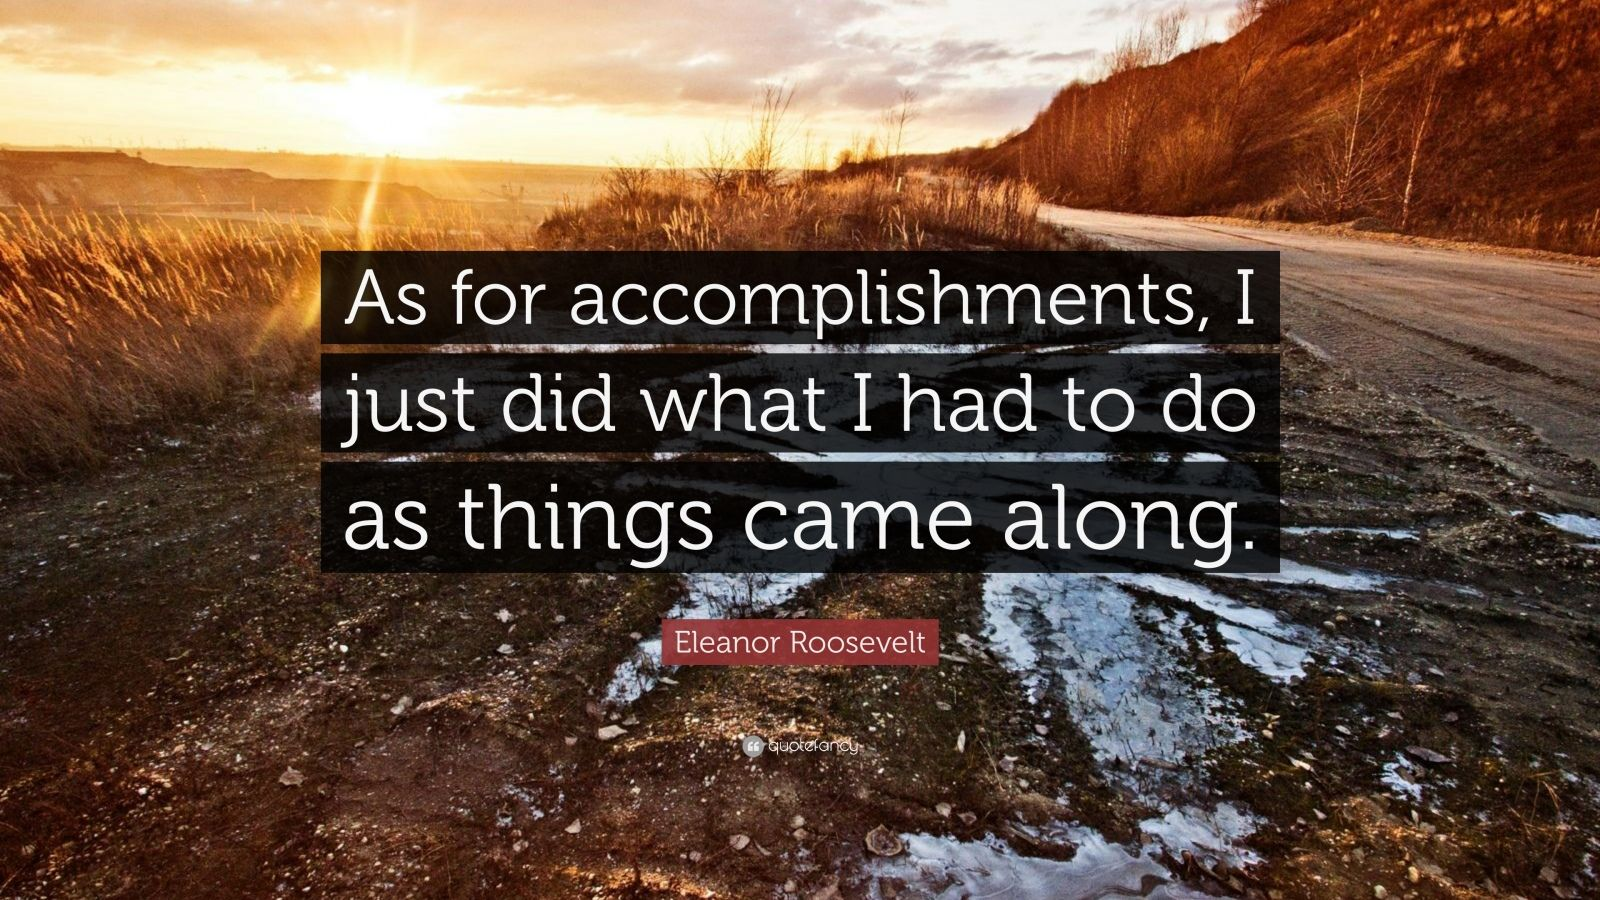 """Eleanor Roosevelt Quote: """"As for accomplishments, I just did what I had to do as things came along."""""""